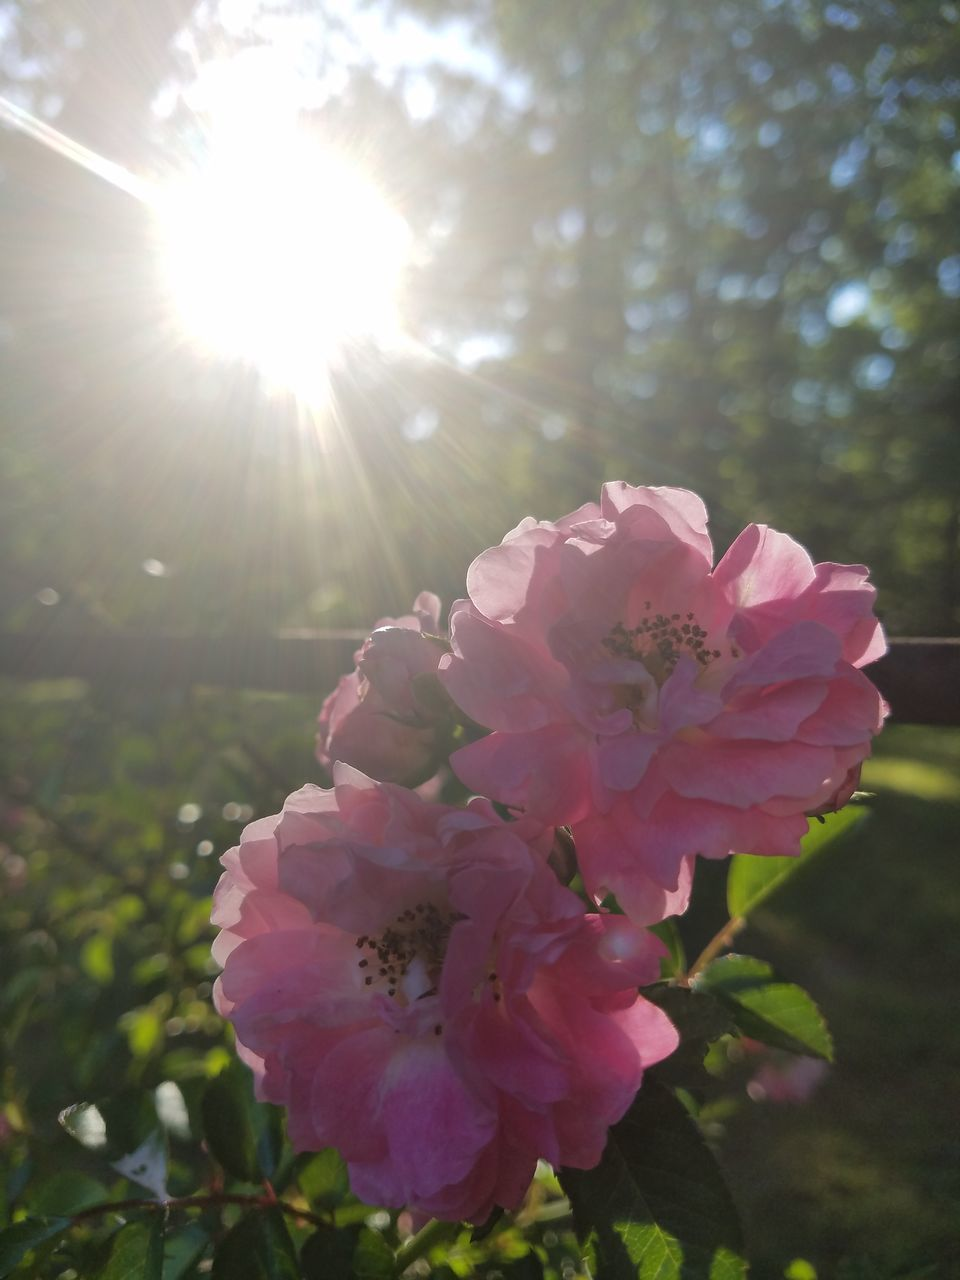 flower, nature, beauty in nature, pink color, petal, fragility, growth, lens flare, sunlight, sun, no people, day, outdoors, plant, close-up, flower head, freshness, tree, blooming